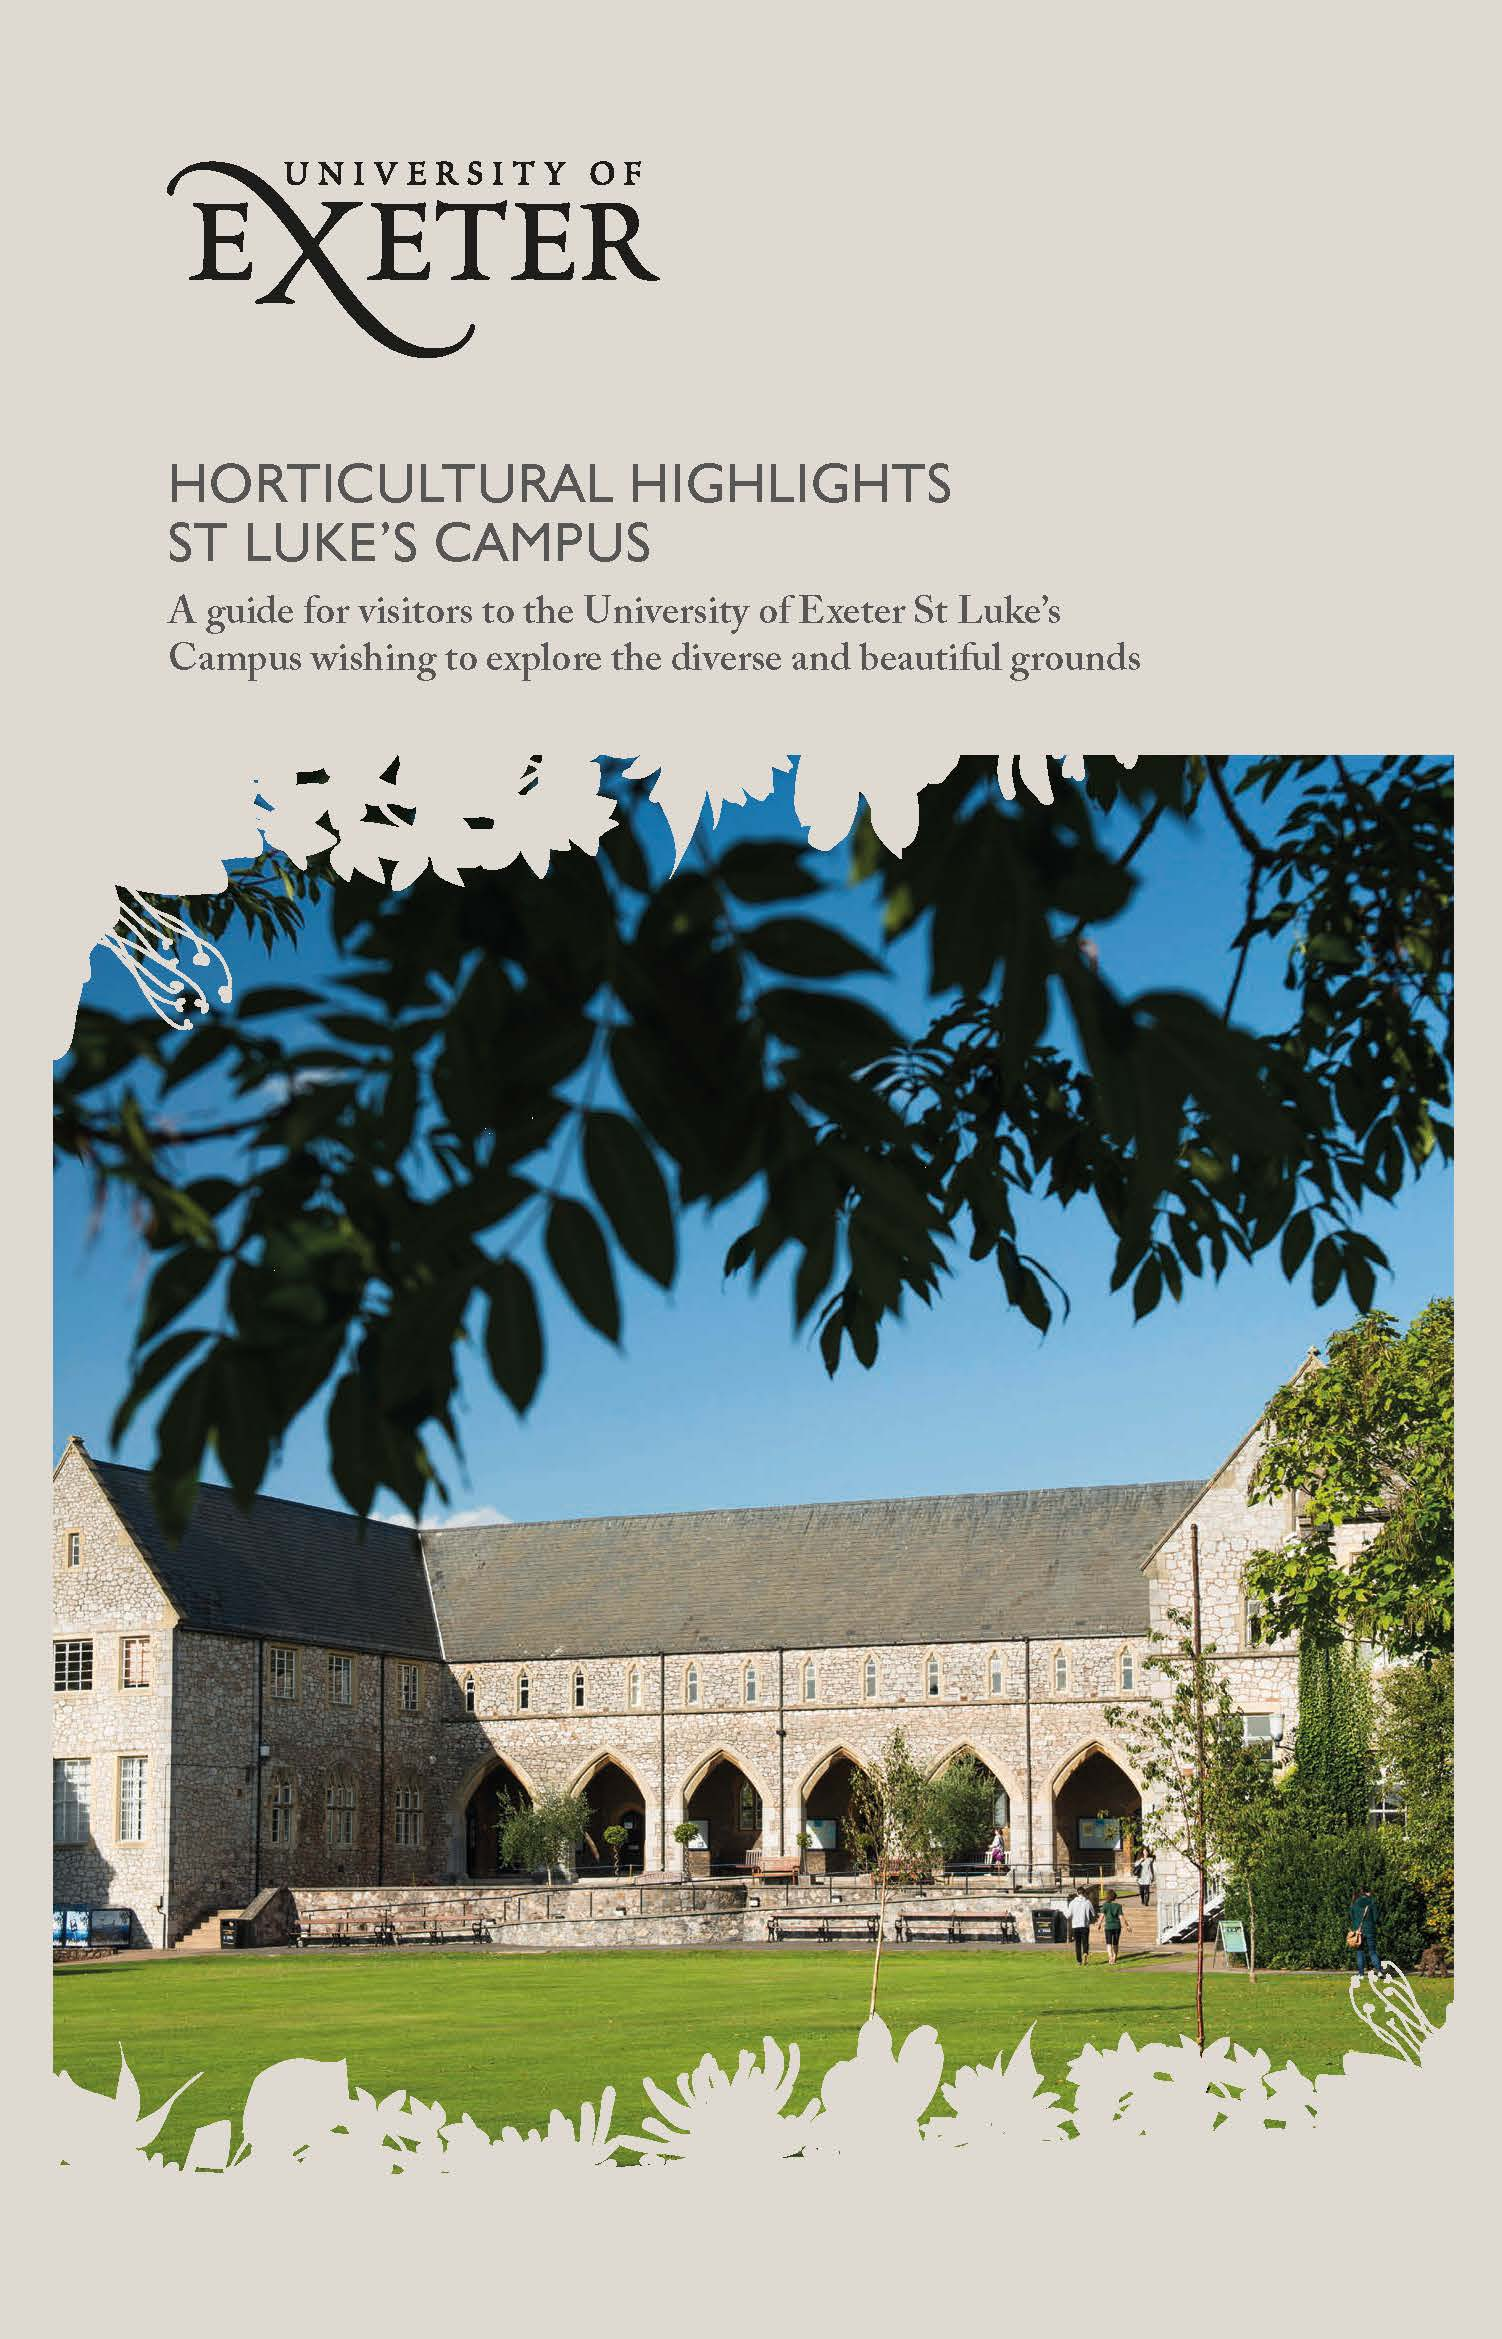 St Luke's Campus Horticultural Highlights